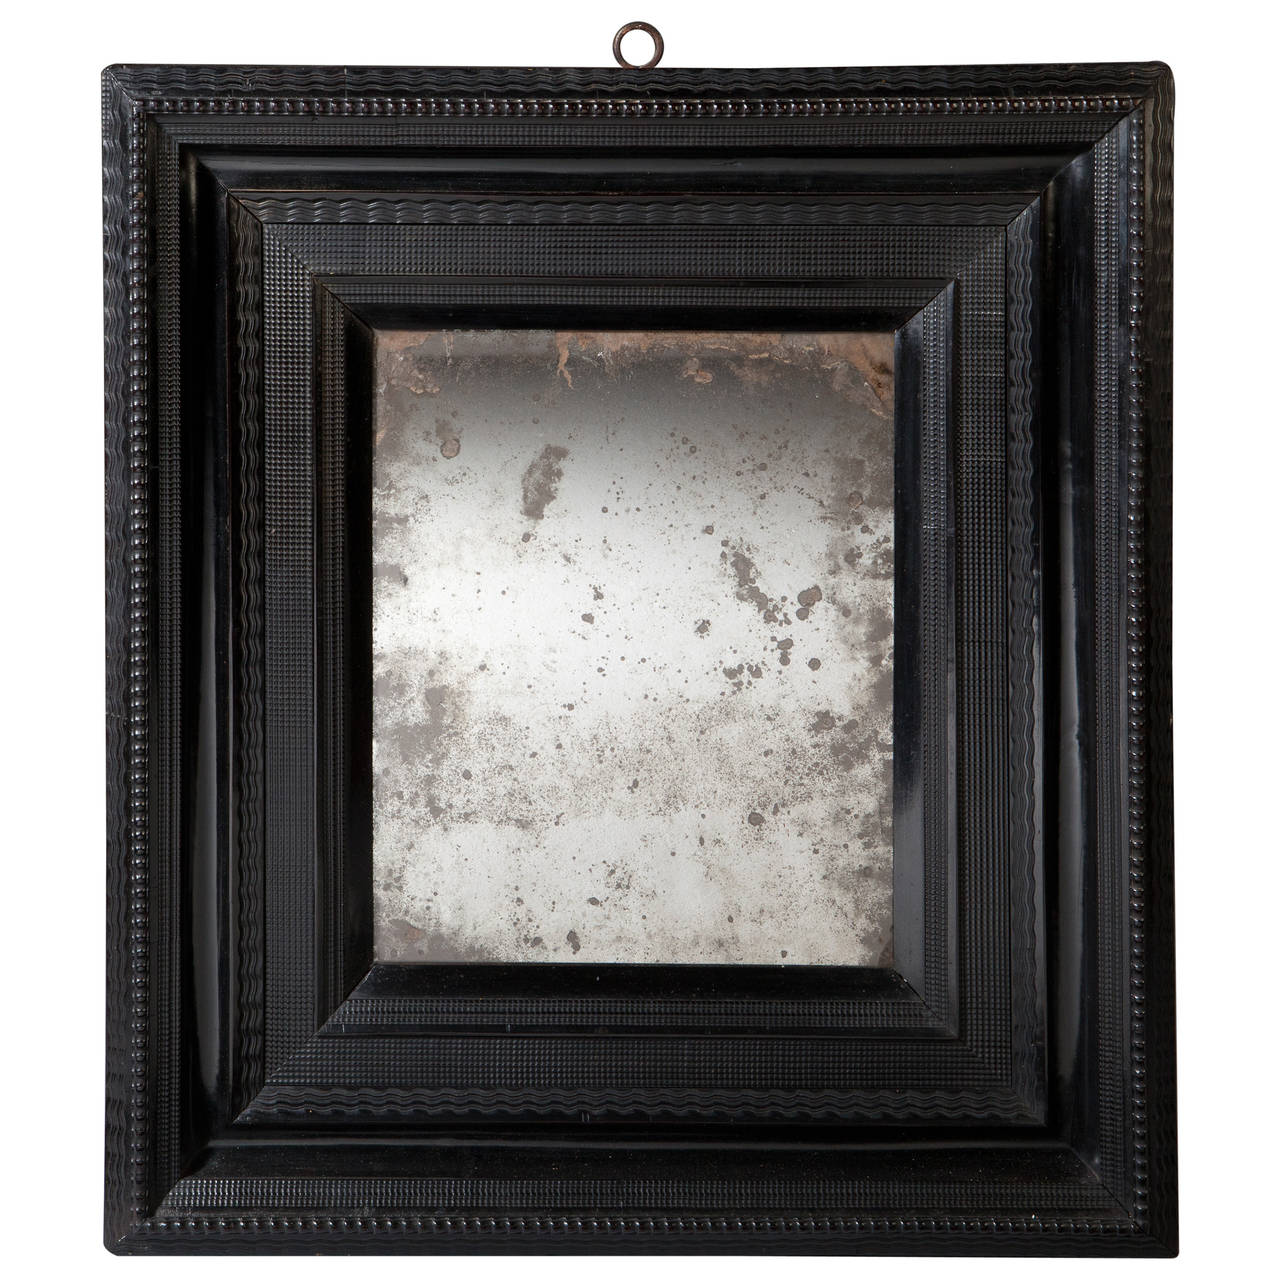 Late 17th century ebony ripple moulded mirror for sale at for 17th century mirrors